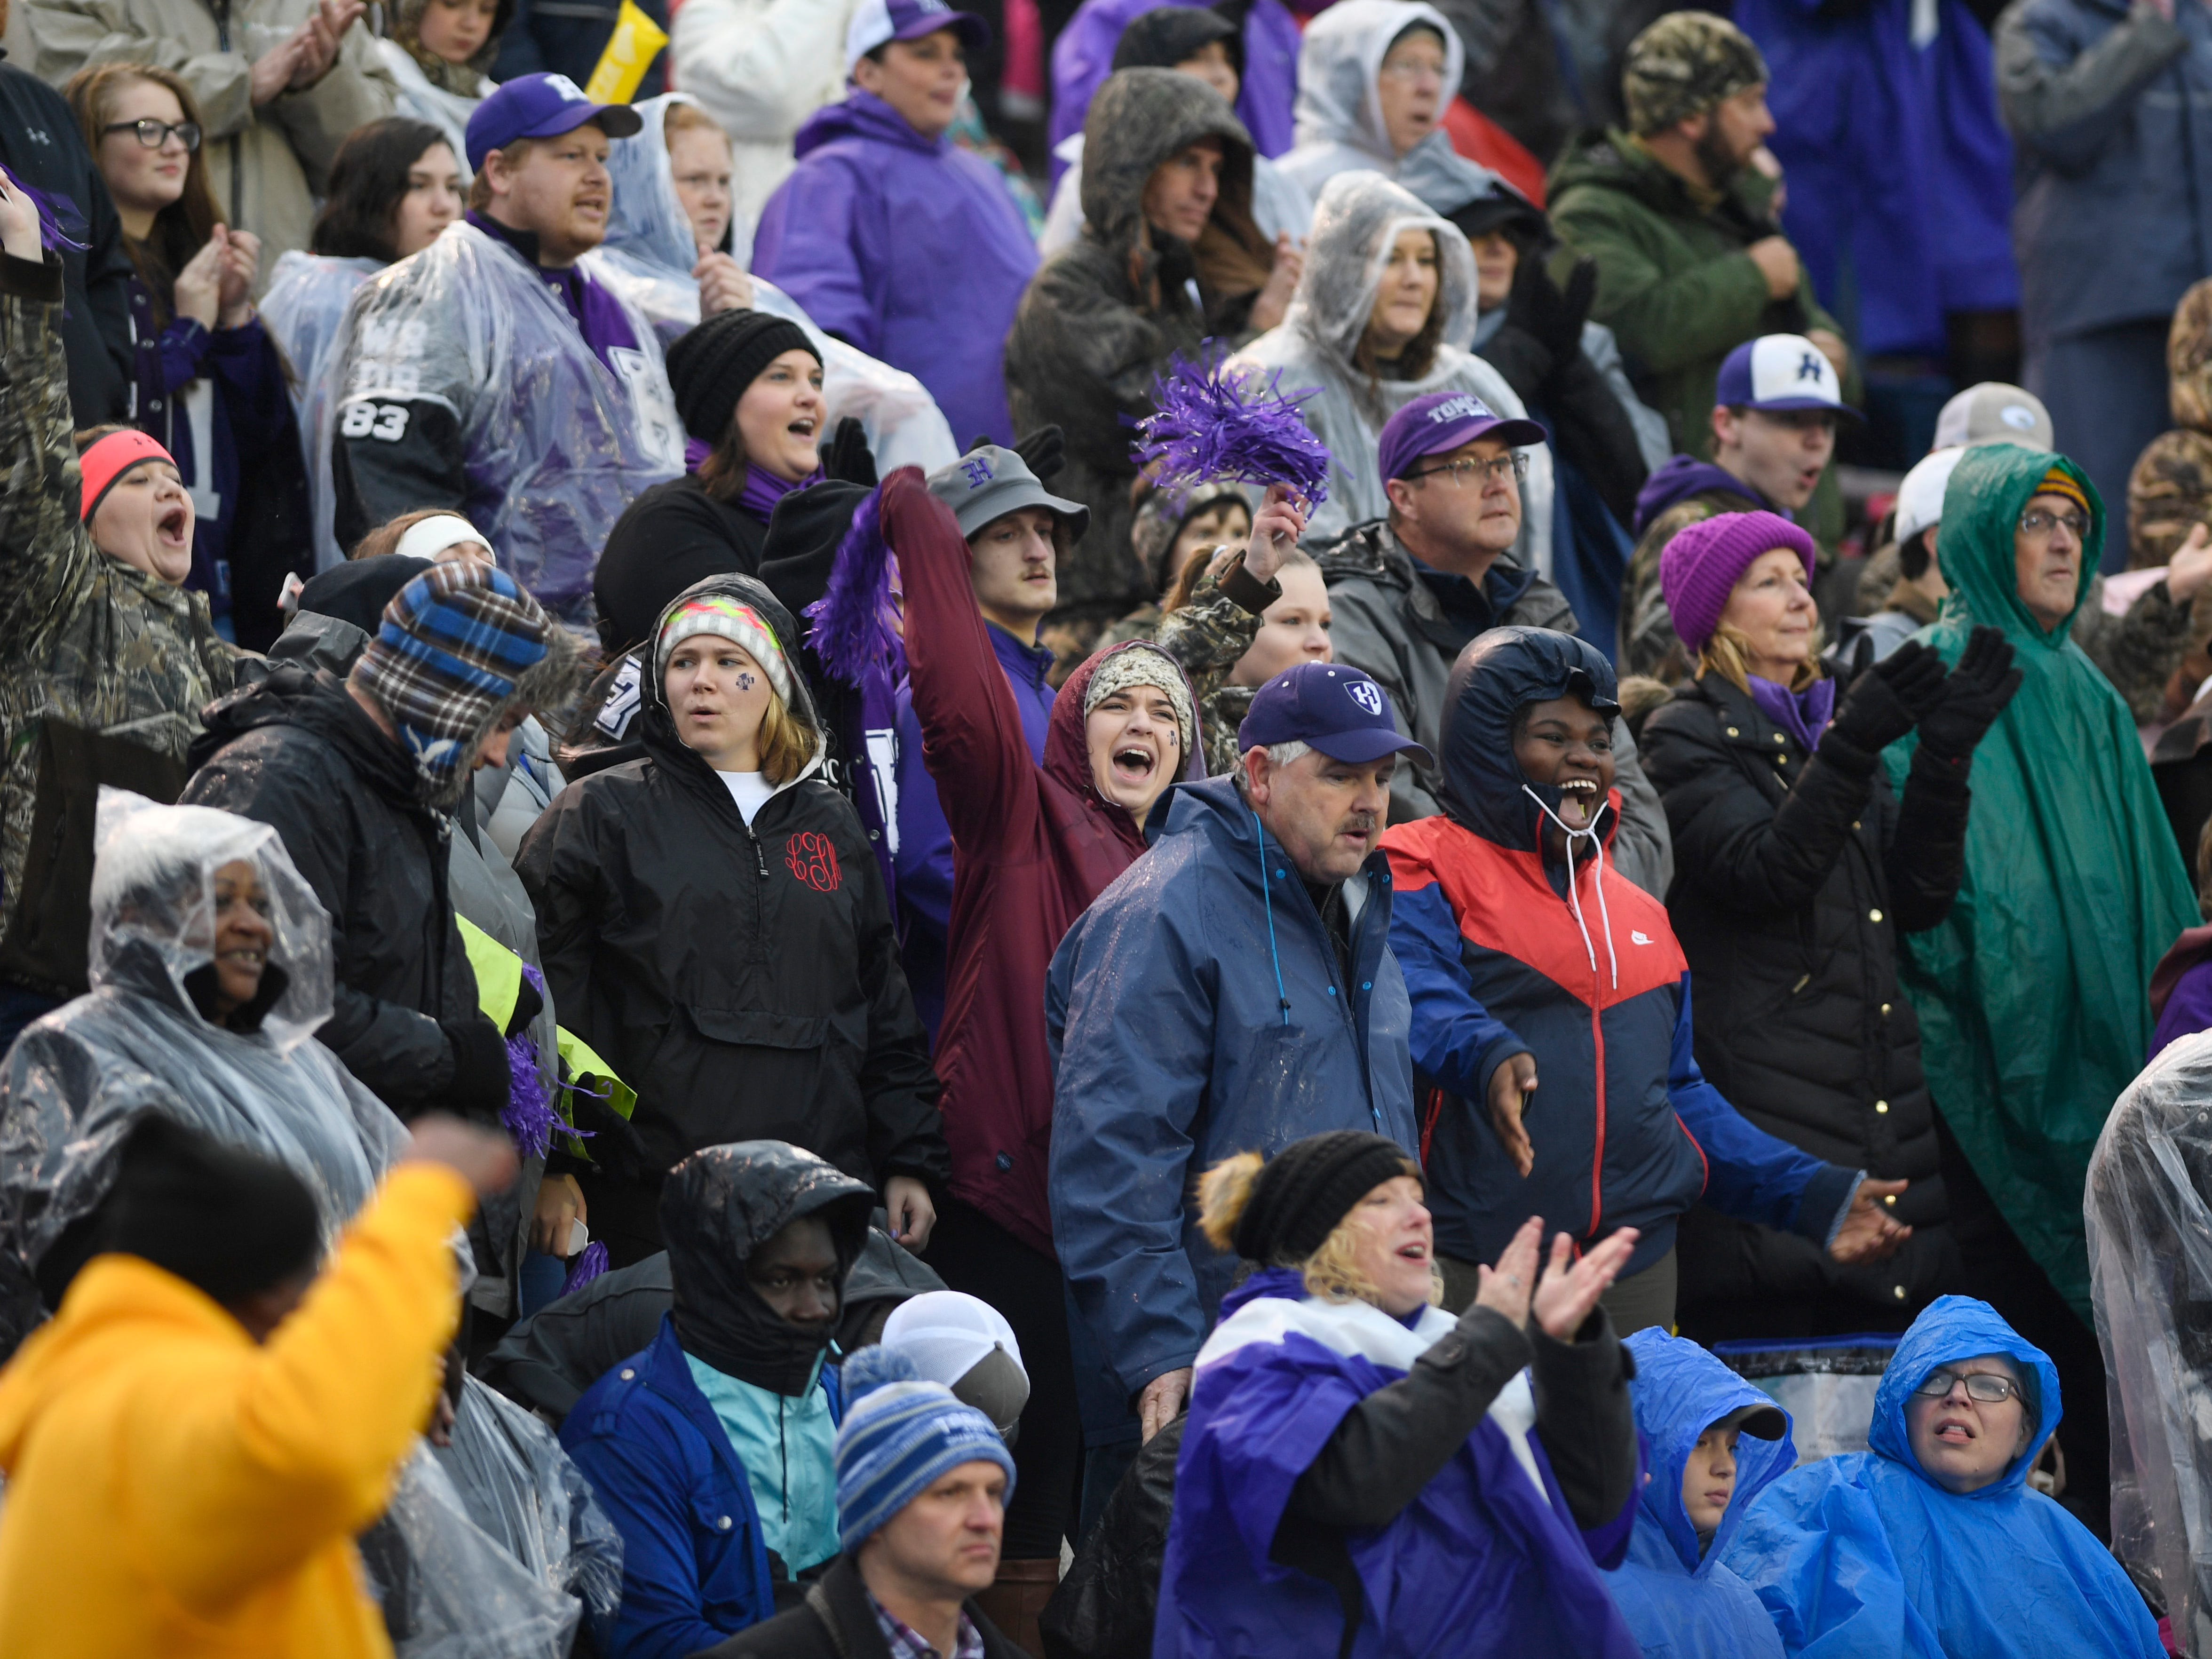 Haywood fans cheer in the first quarter during the Class 4A BlueCross Bowl state championship at Tennessee Tech's Tucker Stadium in Cookeville, Tenn., on Thursday, Nov. 29, 2018.